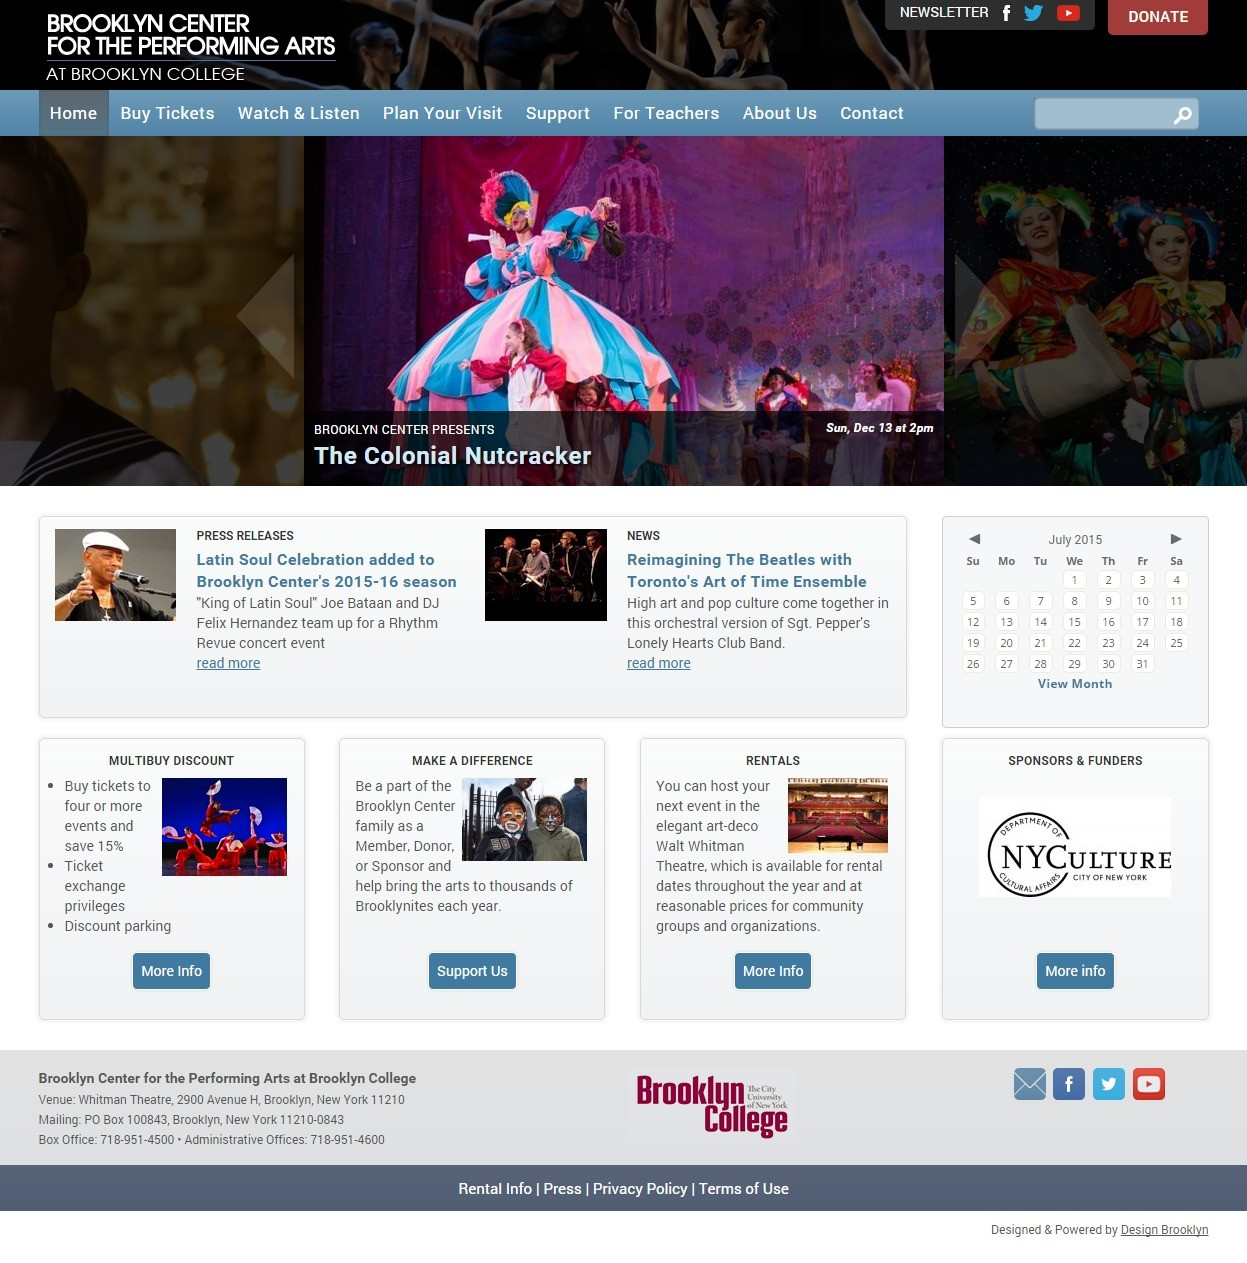 Brooklyn Center for the Performing Arts Homepage